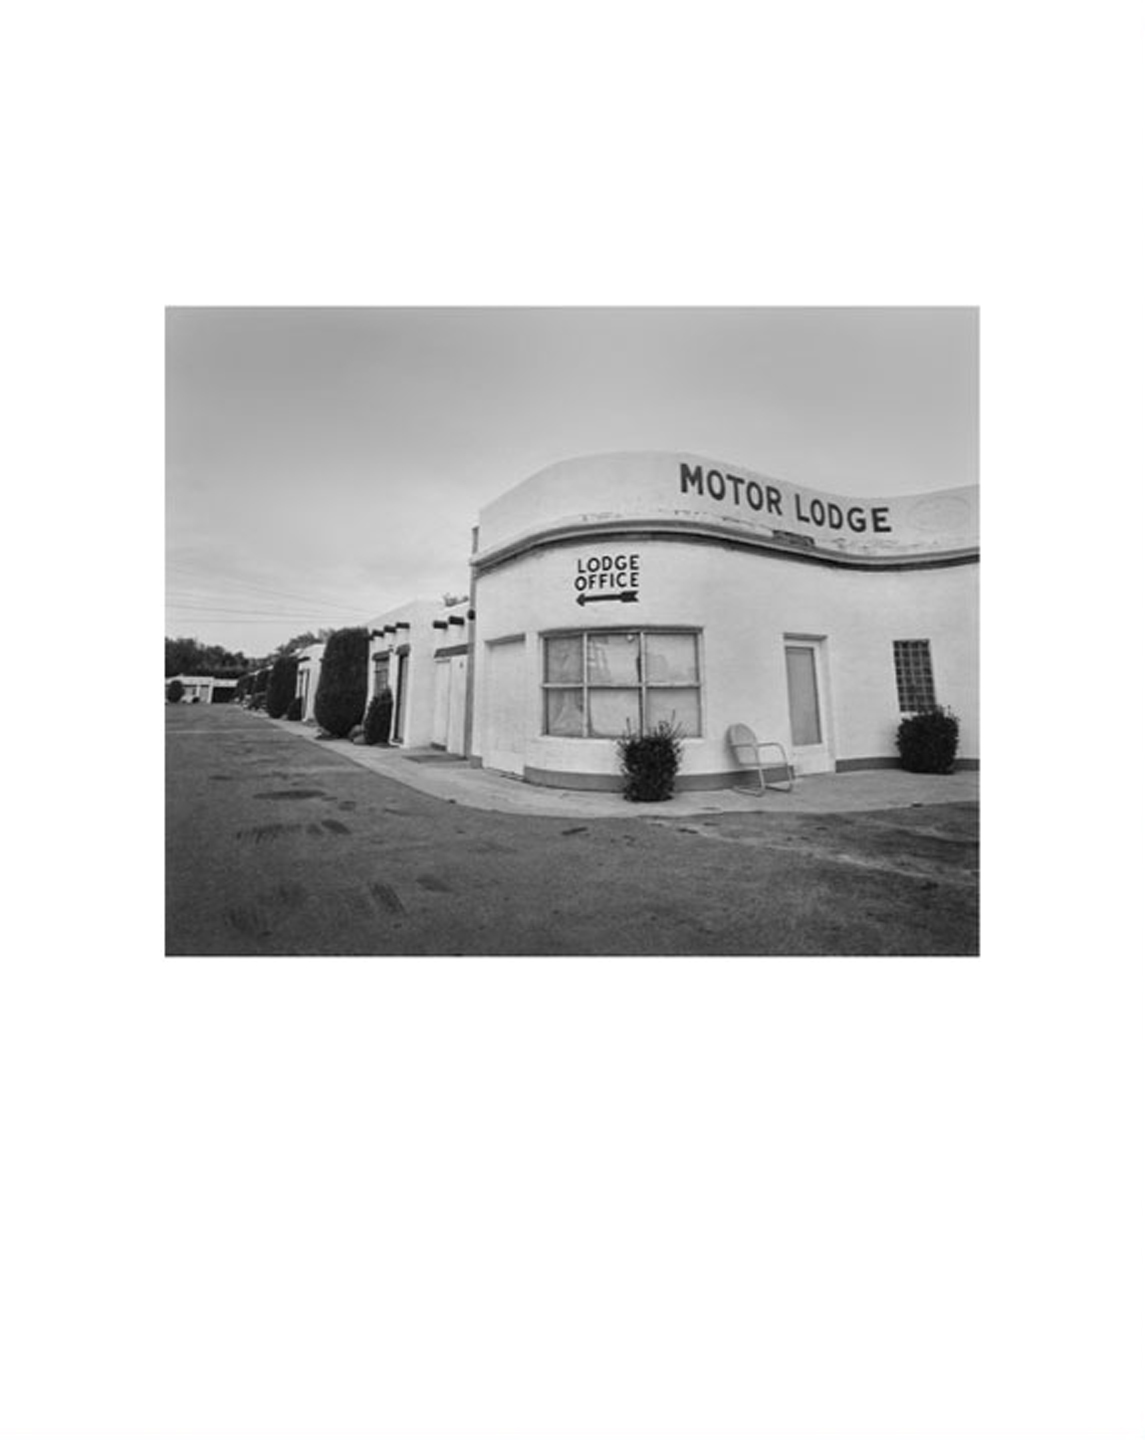 "NZ Library #1: John Schott: Route 66, Special Limited Edition (with Gelatin Silver Contact Print ""Untitled"" from the Series ""Route 66 Motels,"" Tipis with Television Antennas, Truck and Palm Trees) (NZ Library - Set One, Volume Six)"